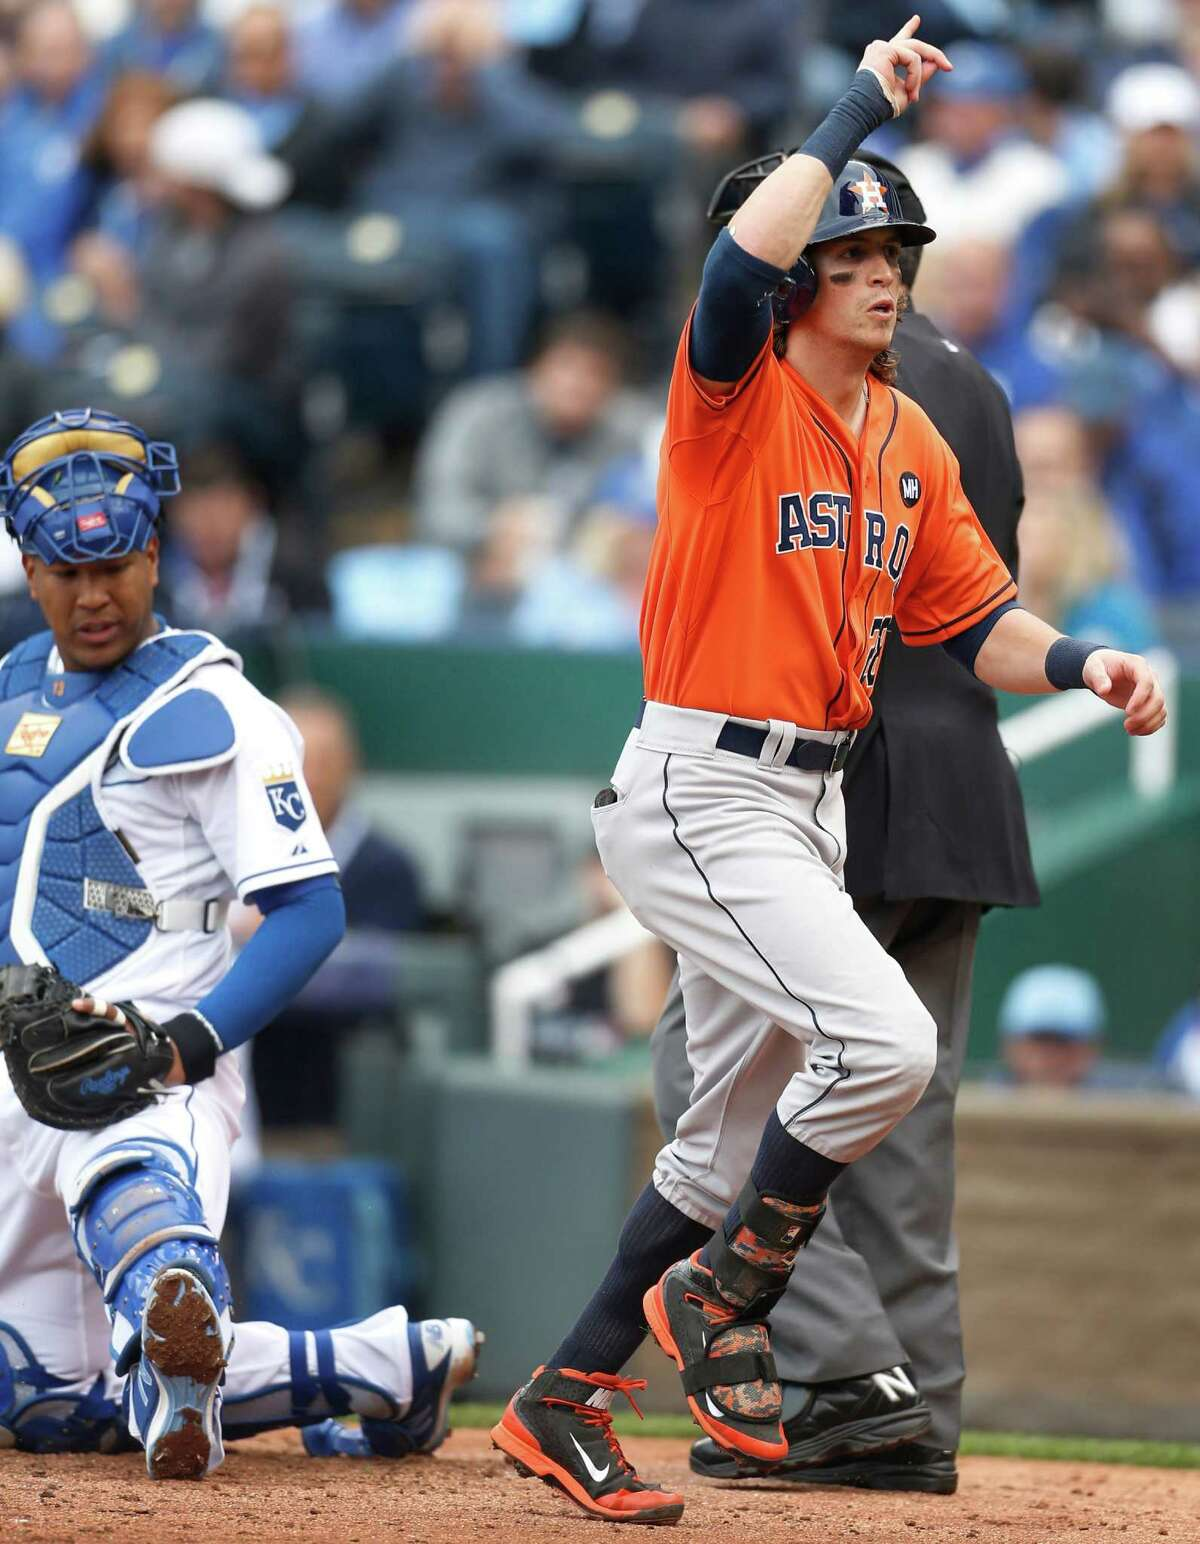 Colby Rasmus will try to build on a strong postseason in his second year with the Astros.